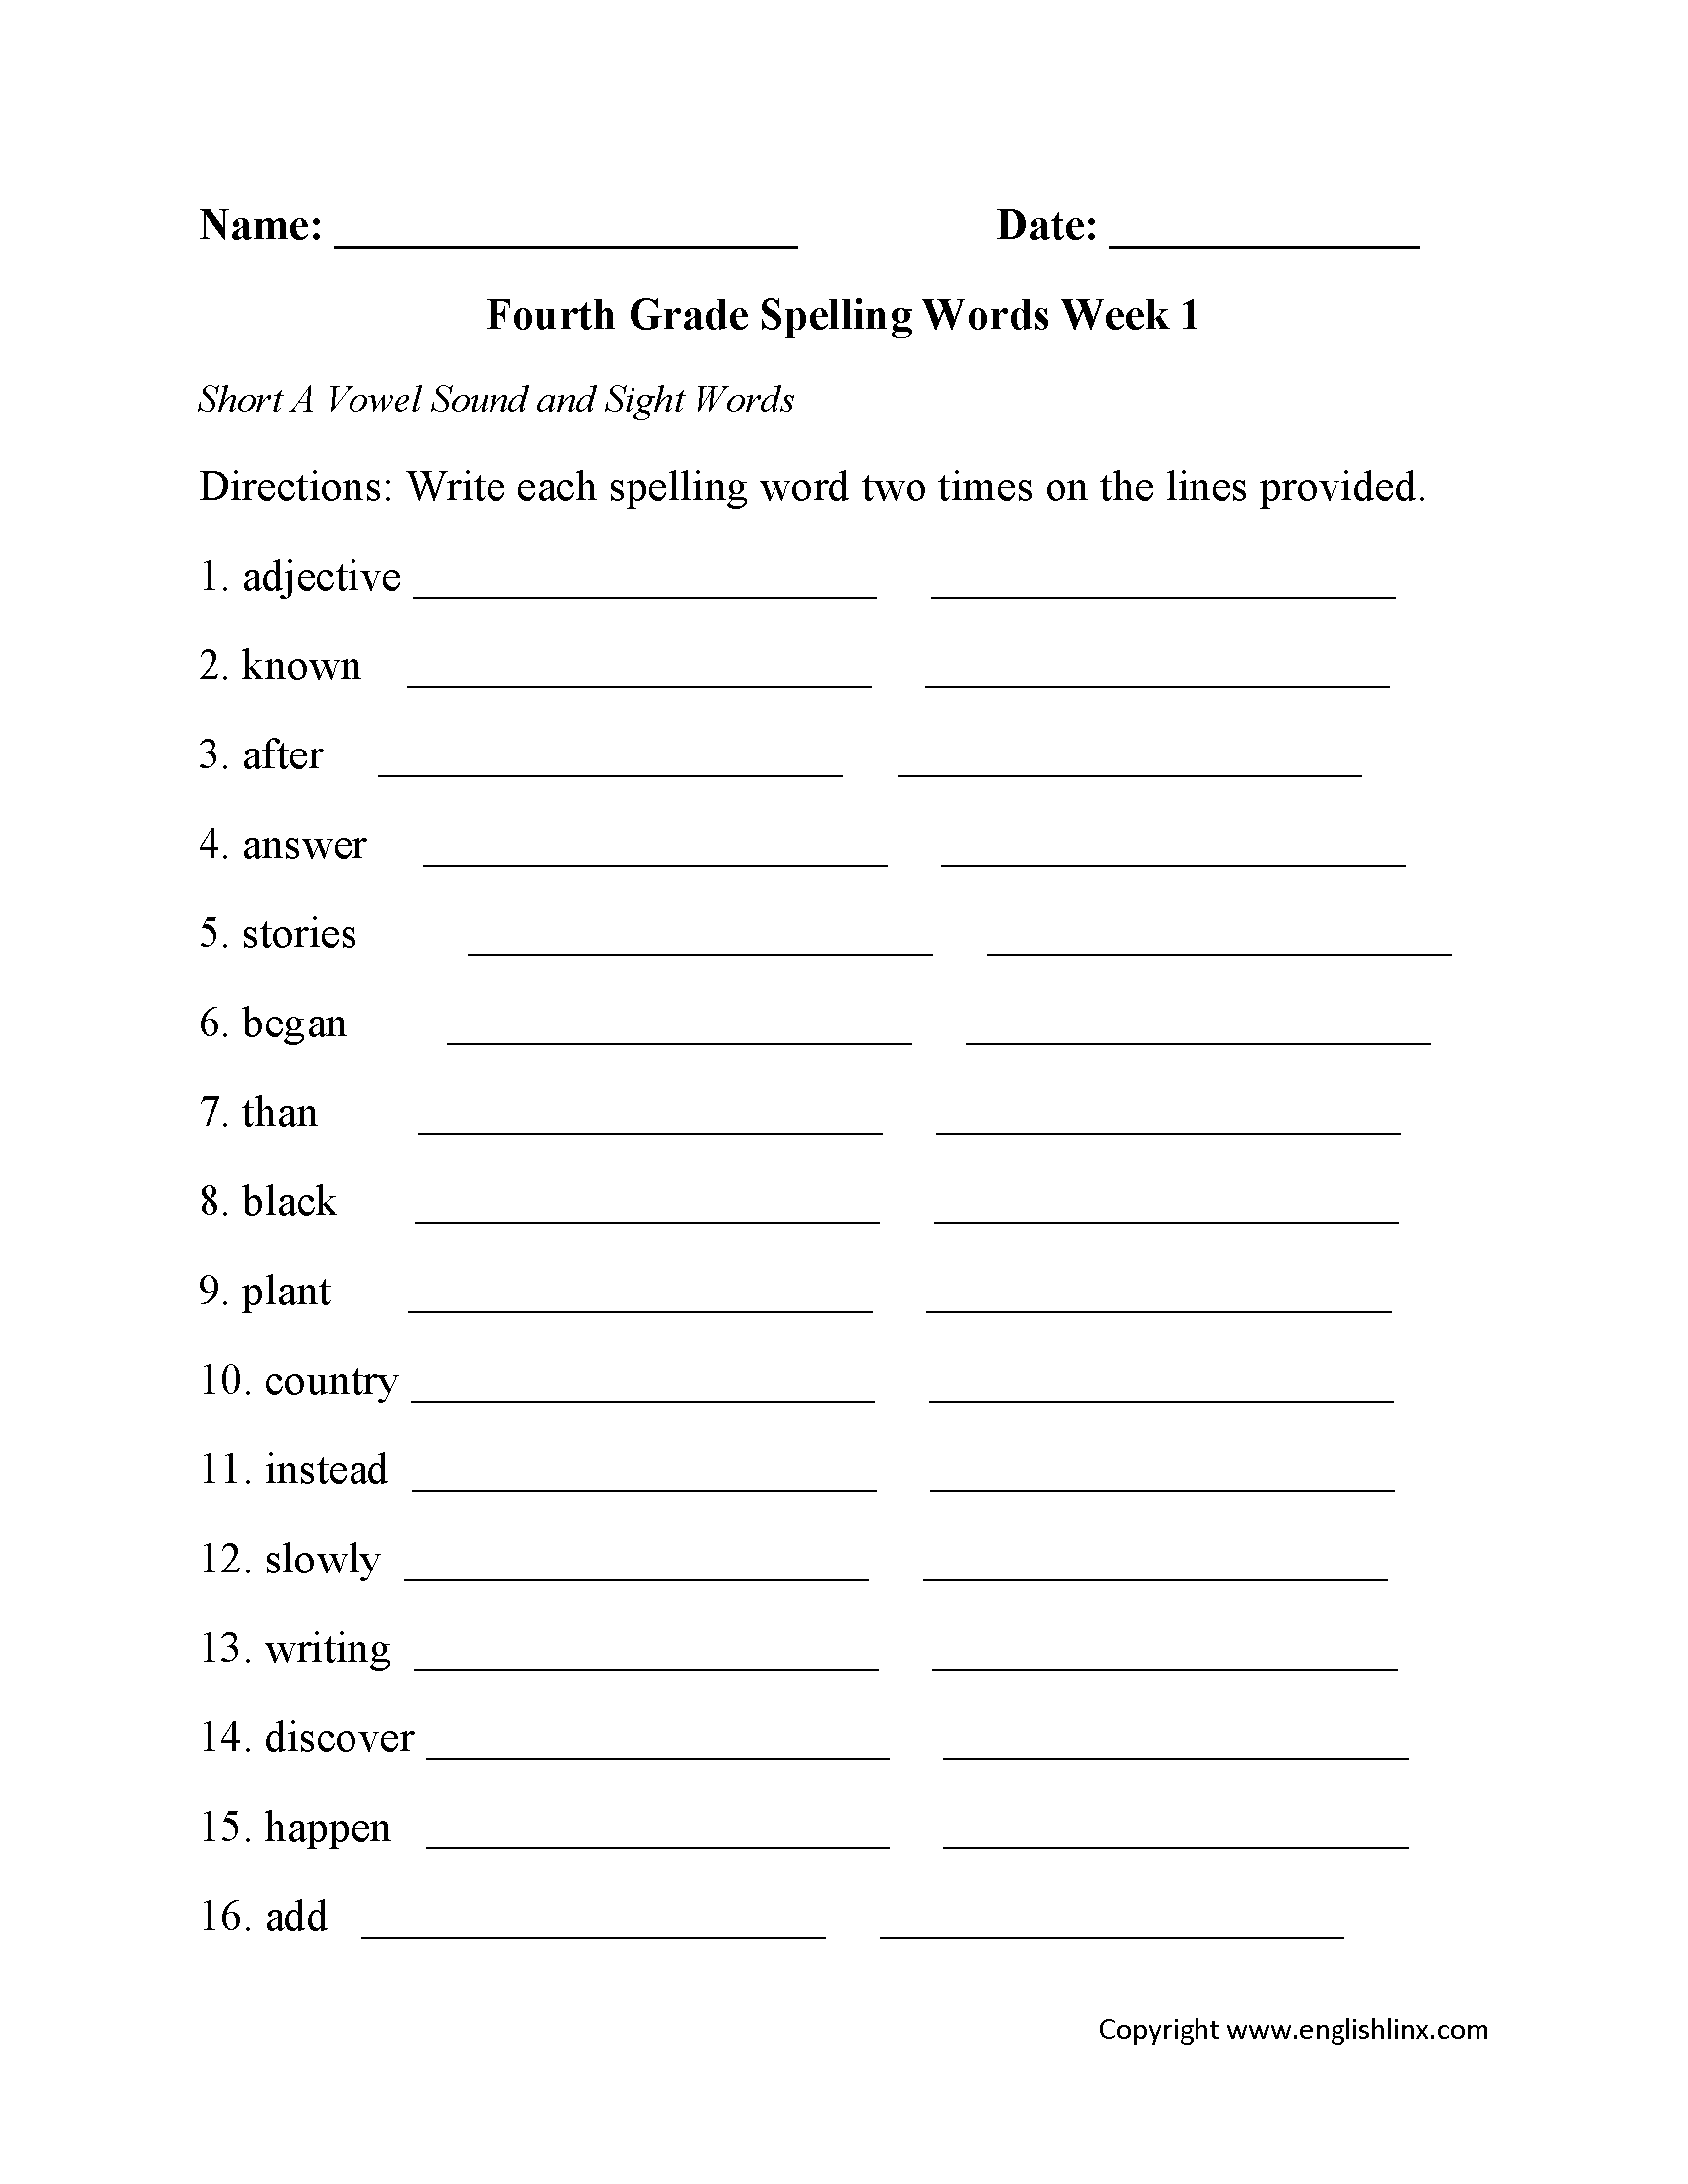 Worksheets Worksheets For 4th Grade spelling worksheets fourth grade worksheets